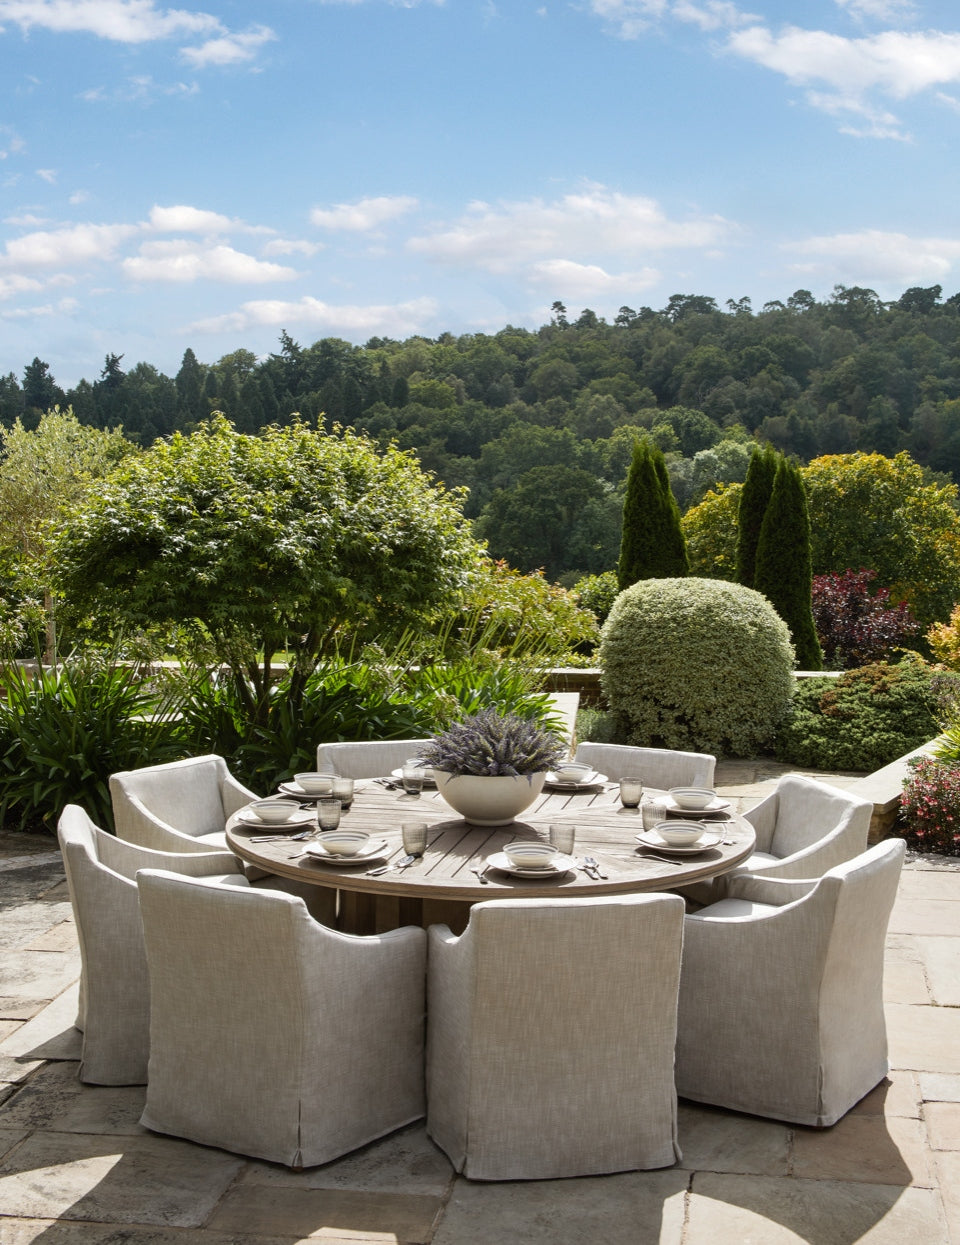 Update your formal outdoor tablescape - Garden Dining Ideas - LuxDeco Style Guide